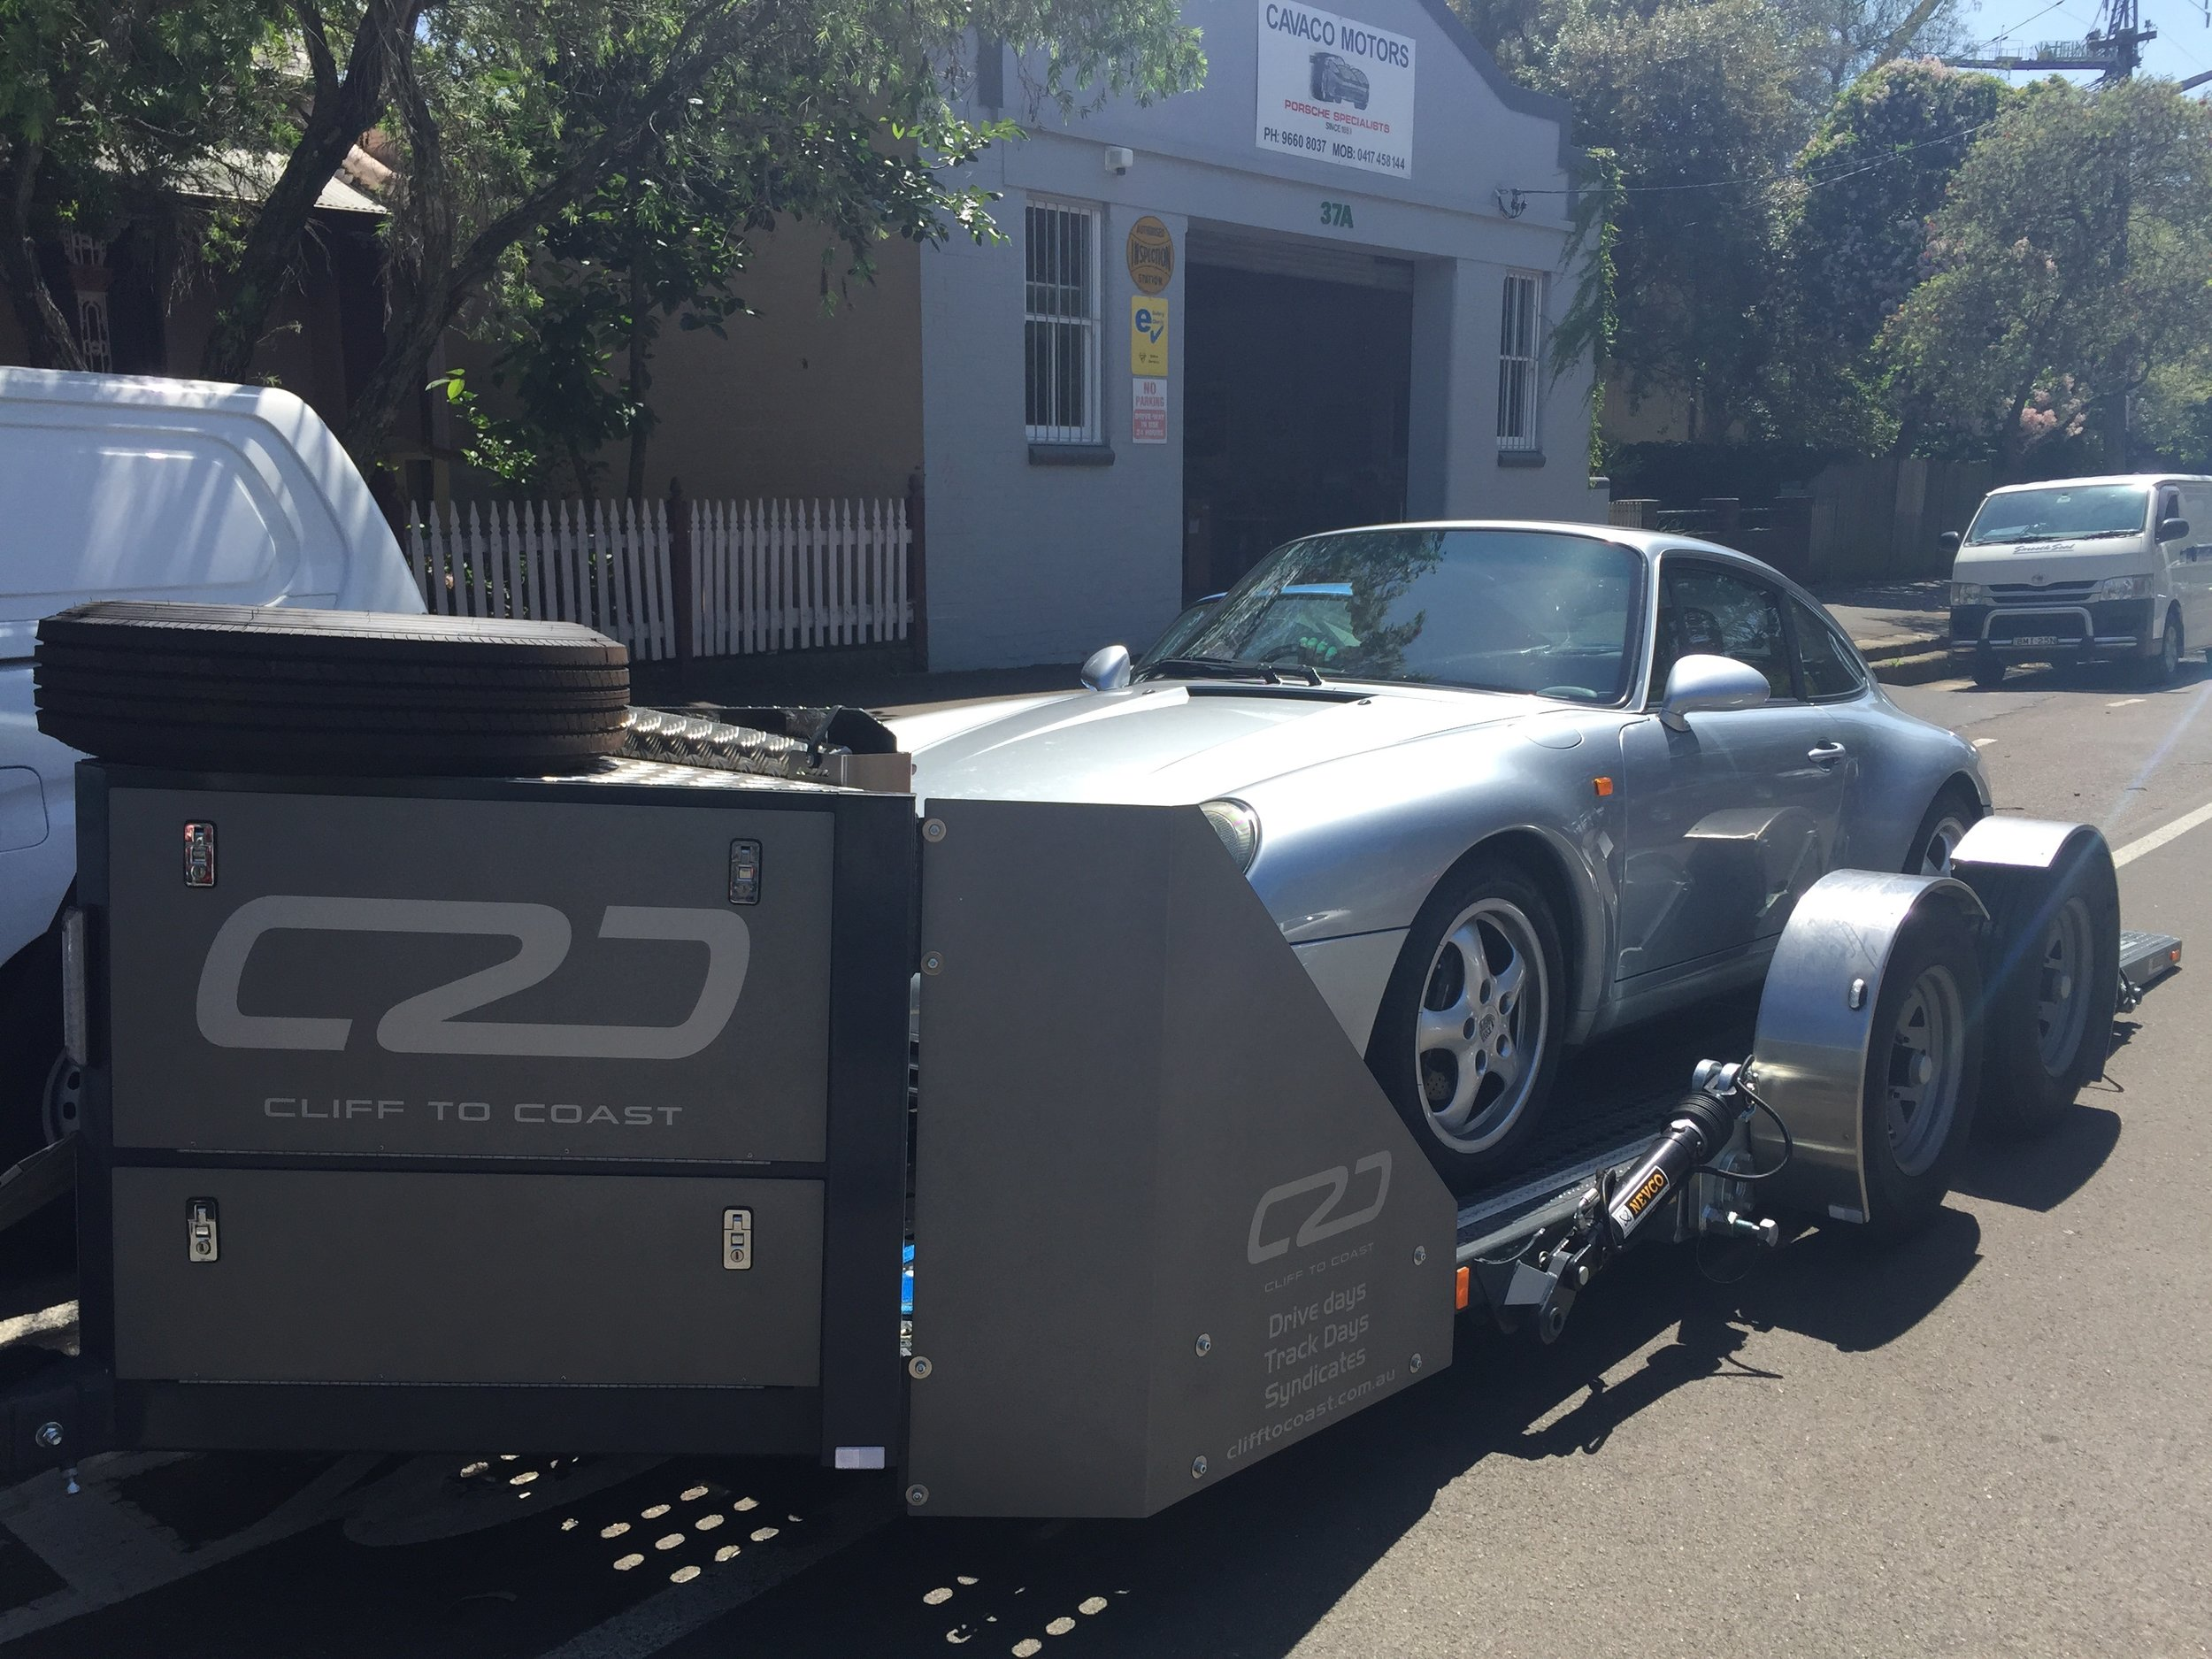 Delivering a Porsche to Cavacos - Air Cooled Porsche Servicing Specialists